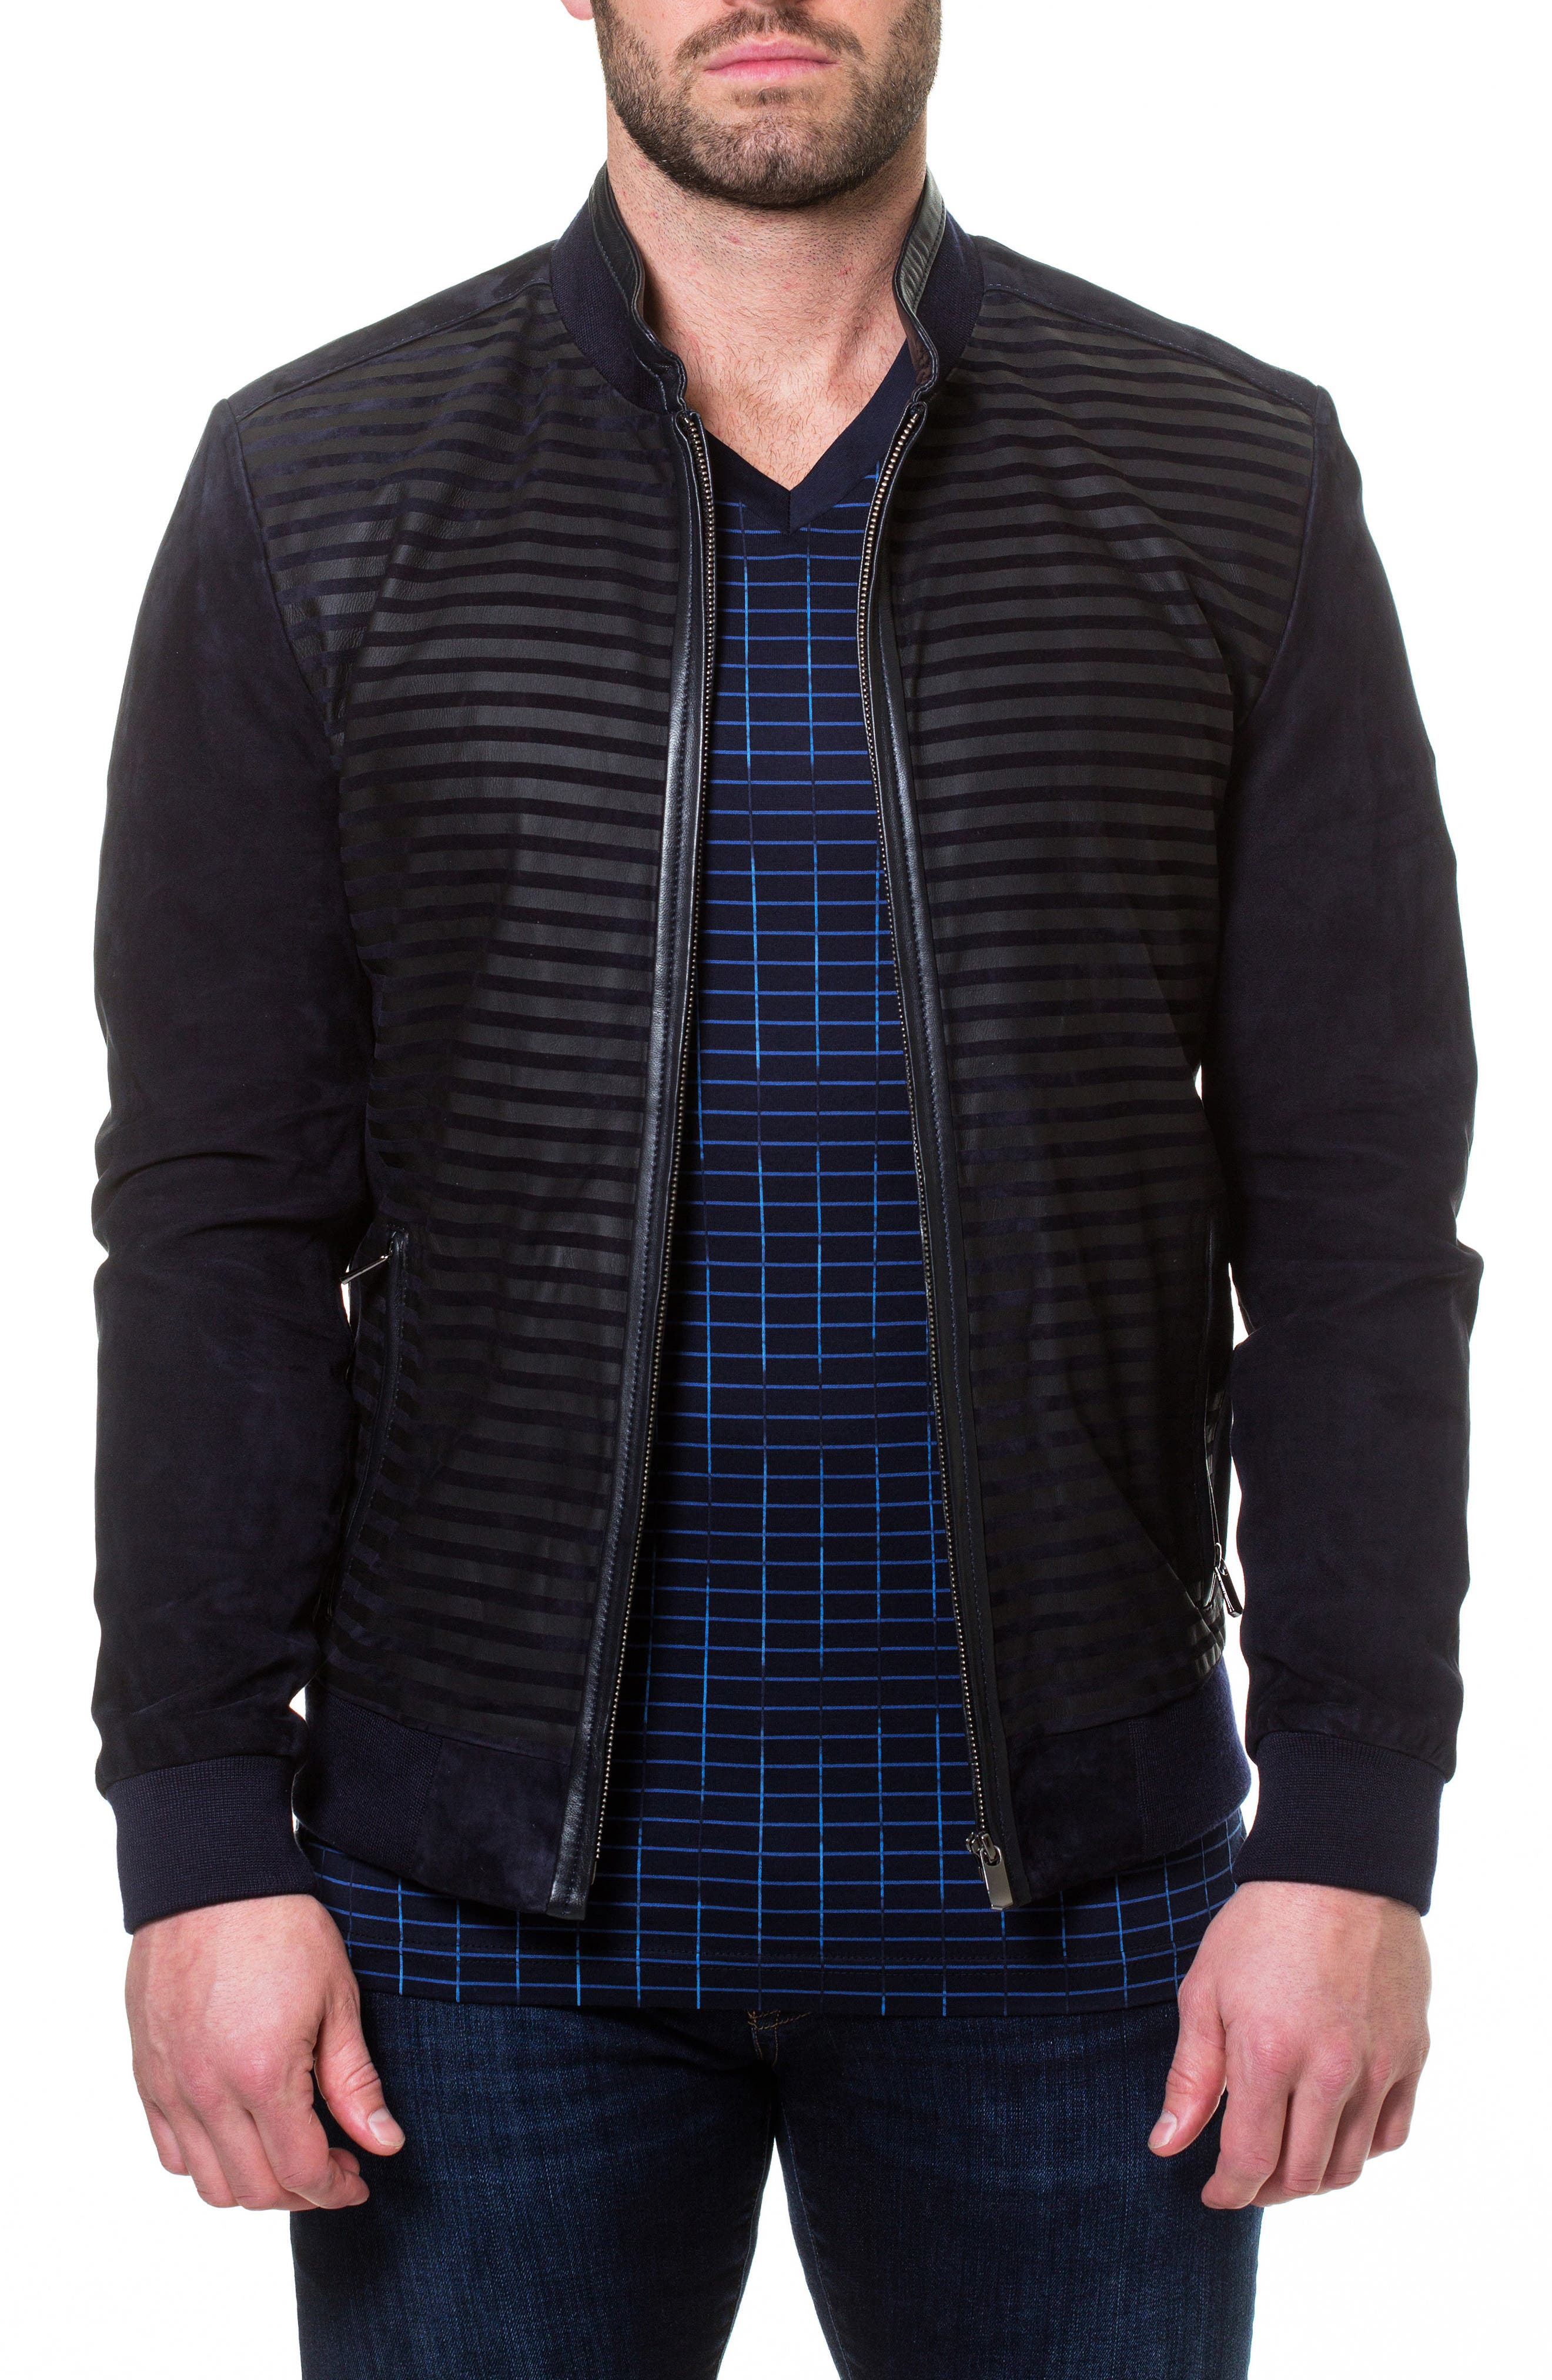 Maceoo Stripe Suede Bomber Jacket, (m) - Blue